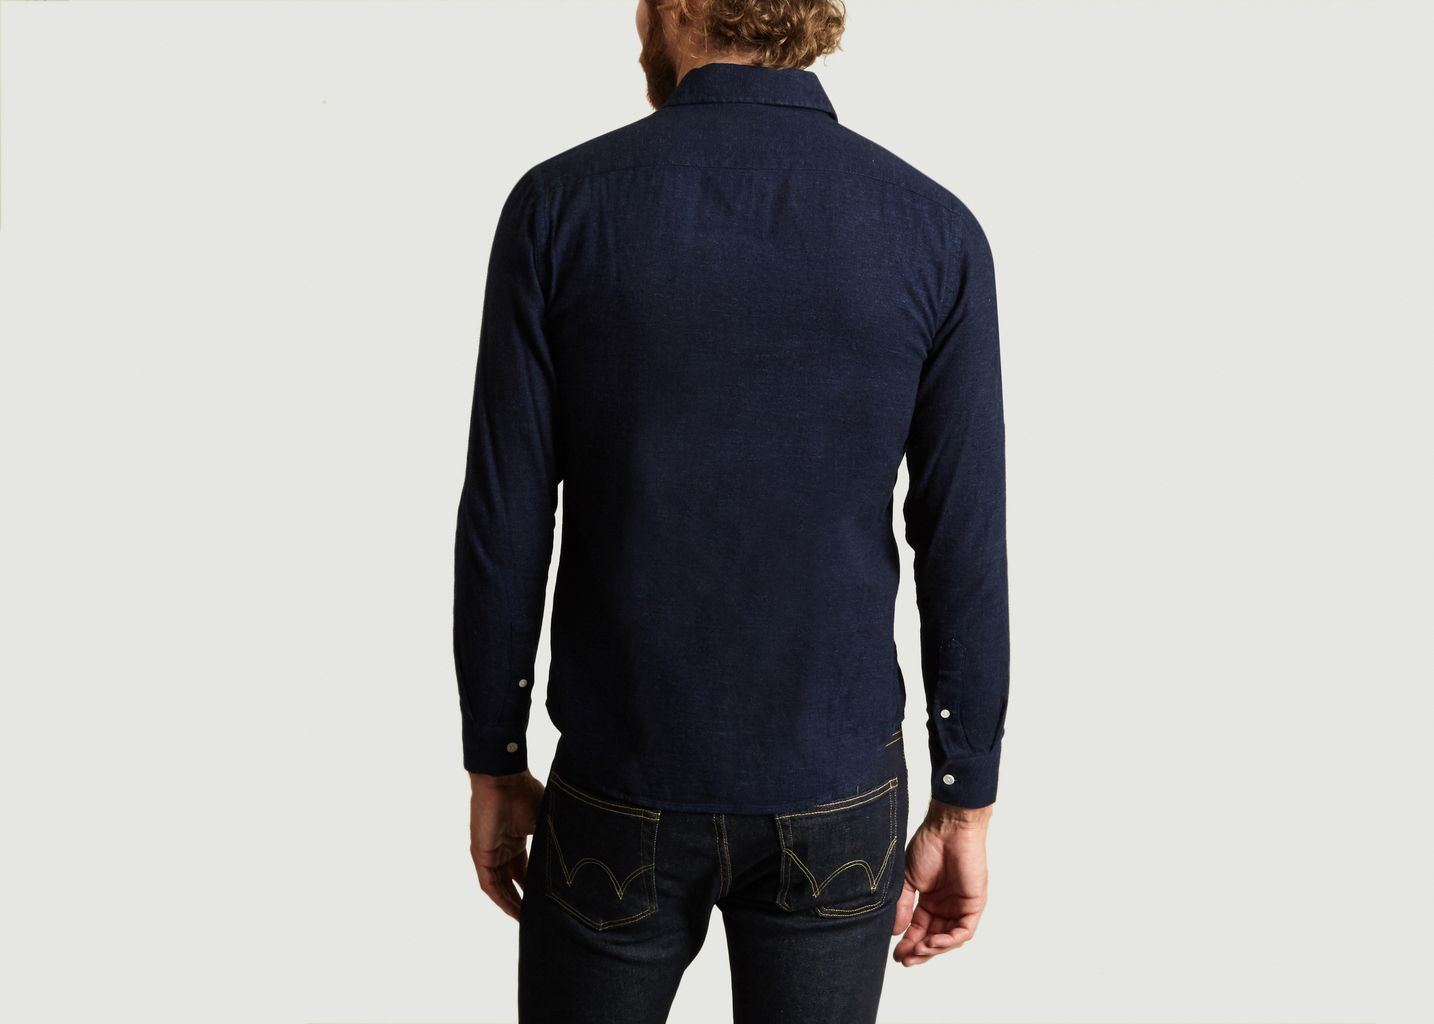 Chemise Artise - Olow